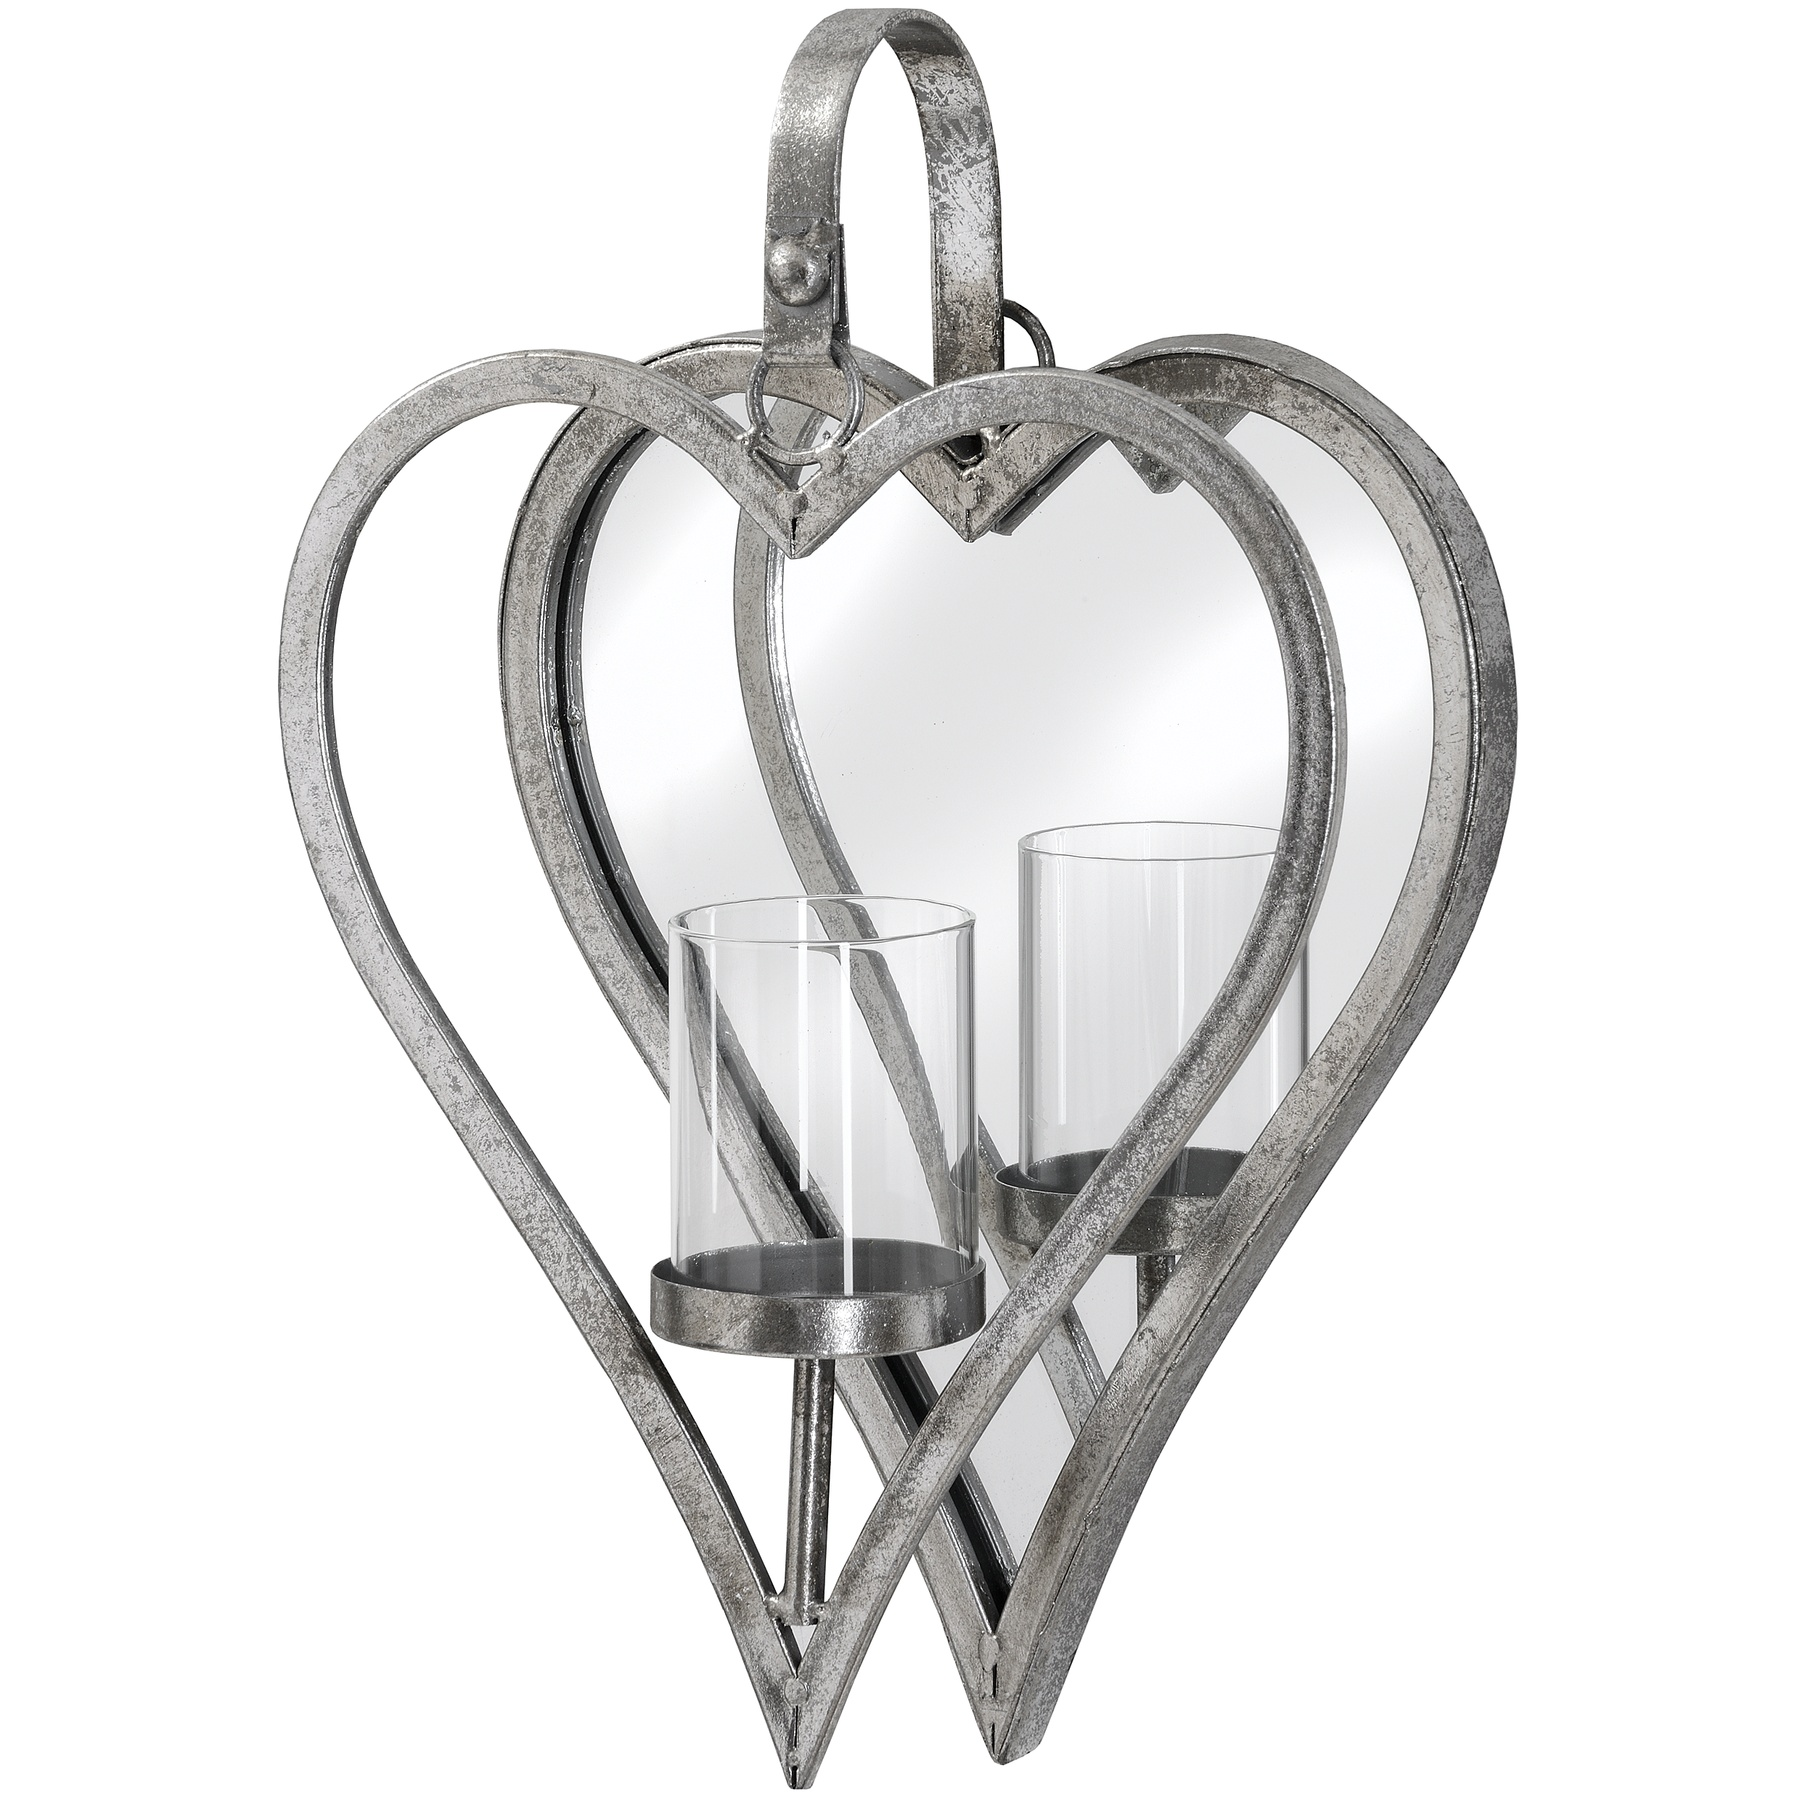 Antique Silver Mirrored Heart Candle Holder by Hill Interiors